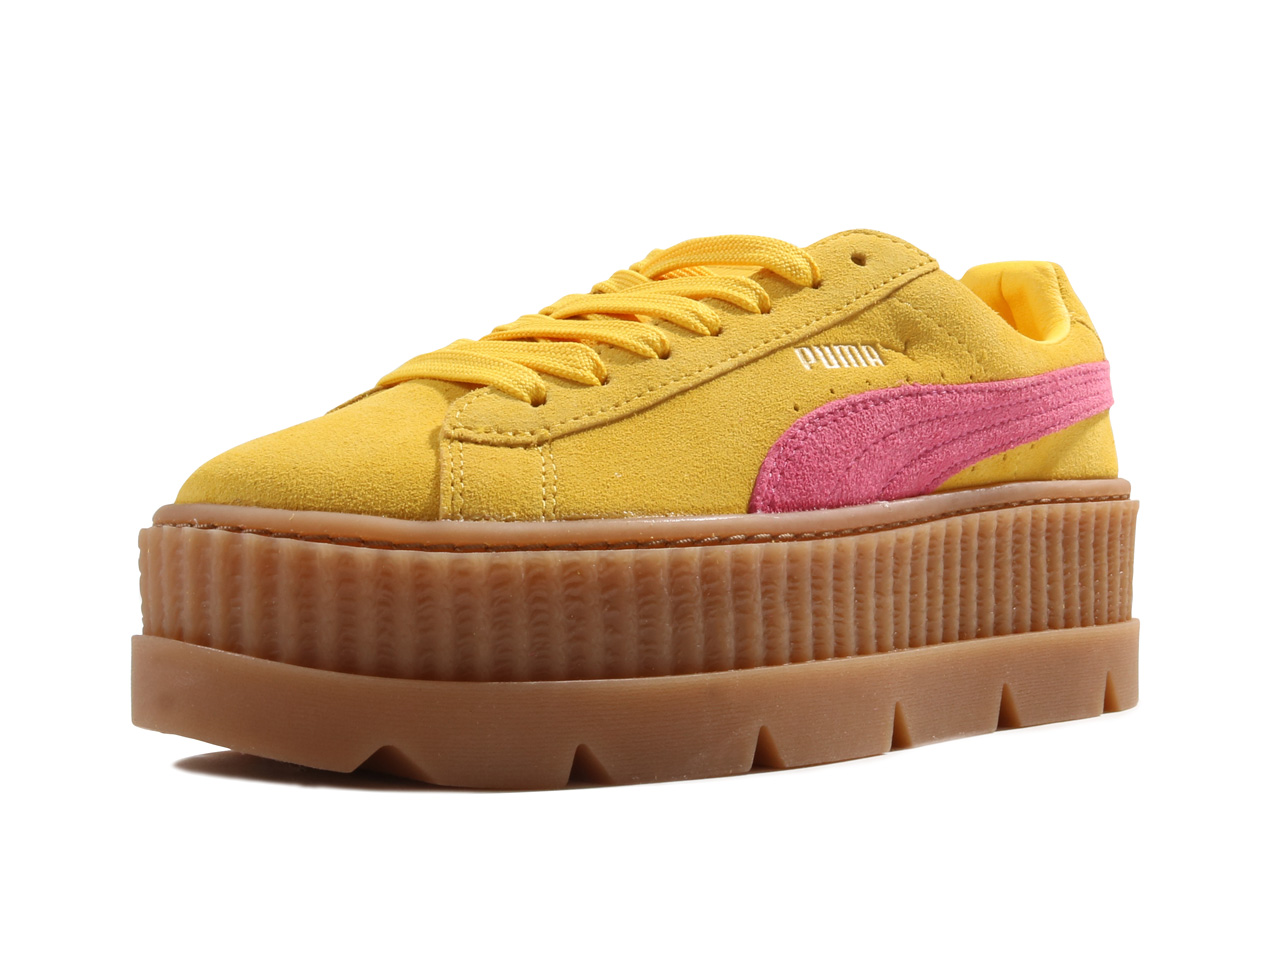 puma_fencty_cleated_creeper_suede_wn_s_366268_03